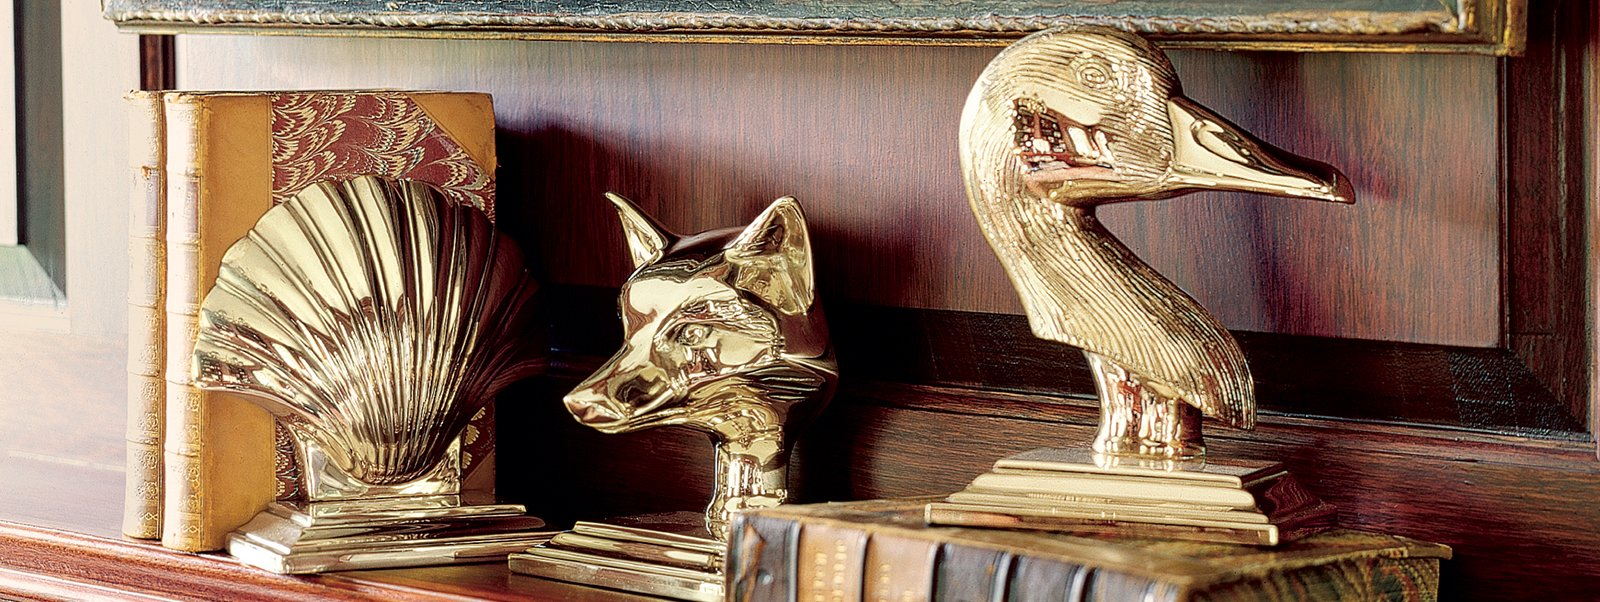 Jefferson Brass Company. Brass Bookends, Seashell Bookend, Fox Head Bookend, Goose Bookend. Welcome to Jefferson Brass Company  Designers and manufacturers of high quality brass gifts and brass decor. Brass door knockers and brass stocking hangers.